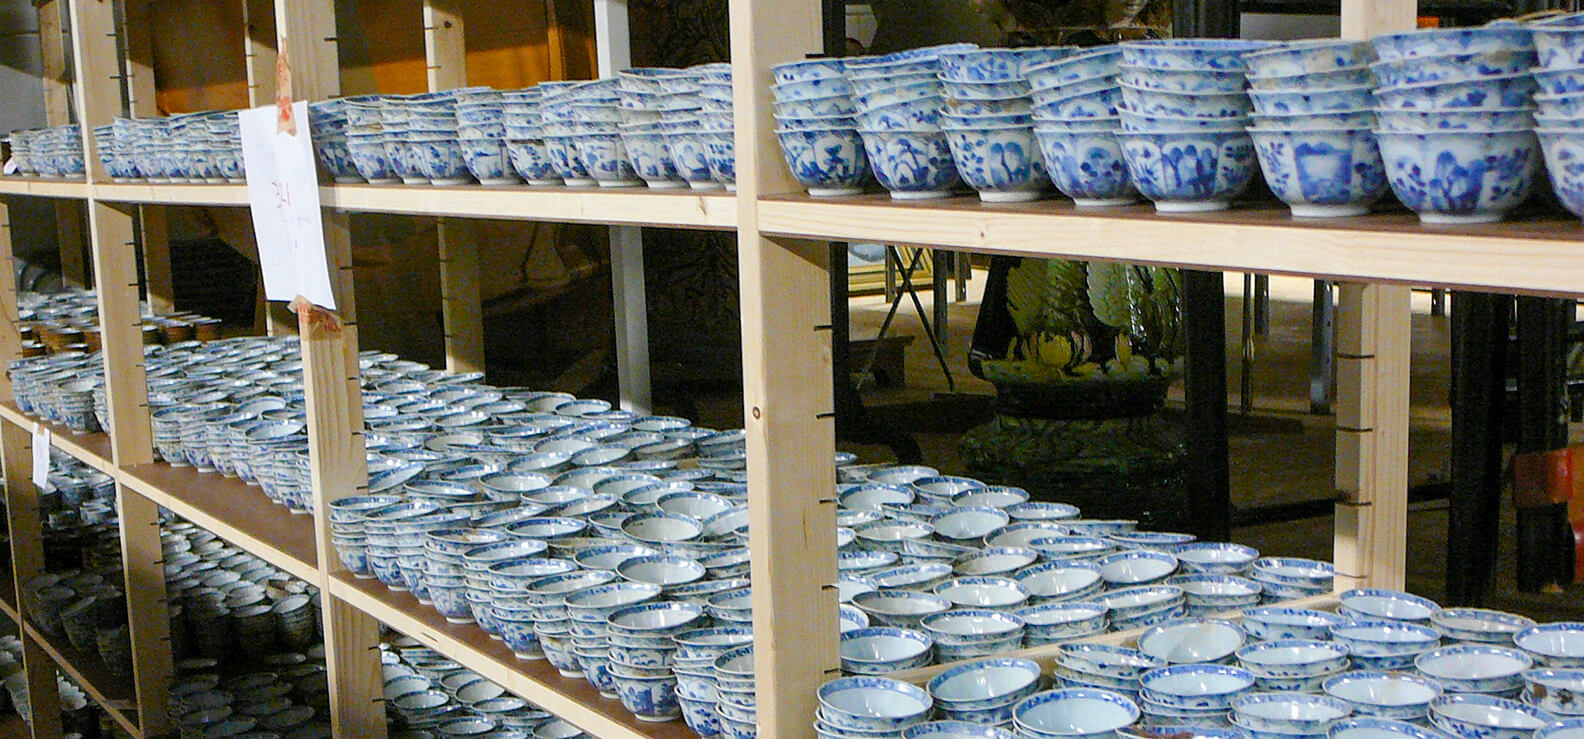 Shelved covered in tea ware from China